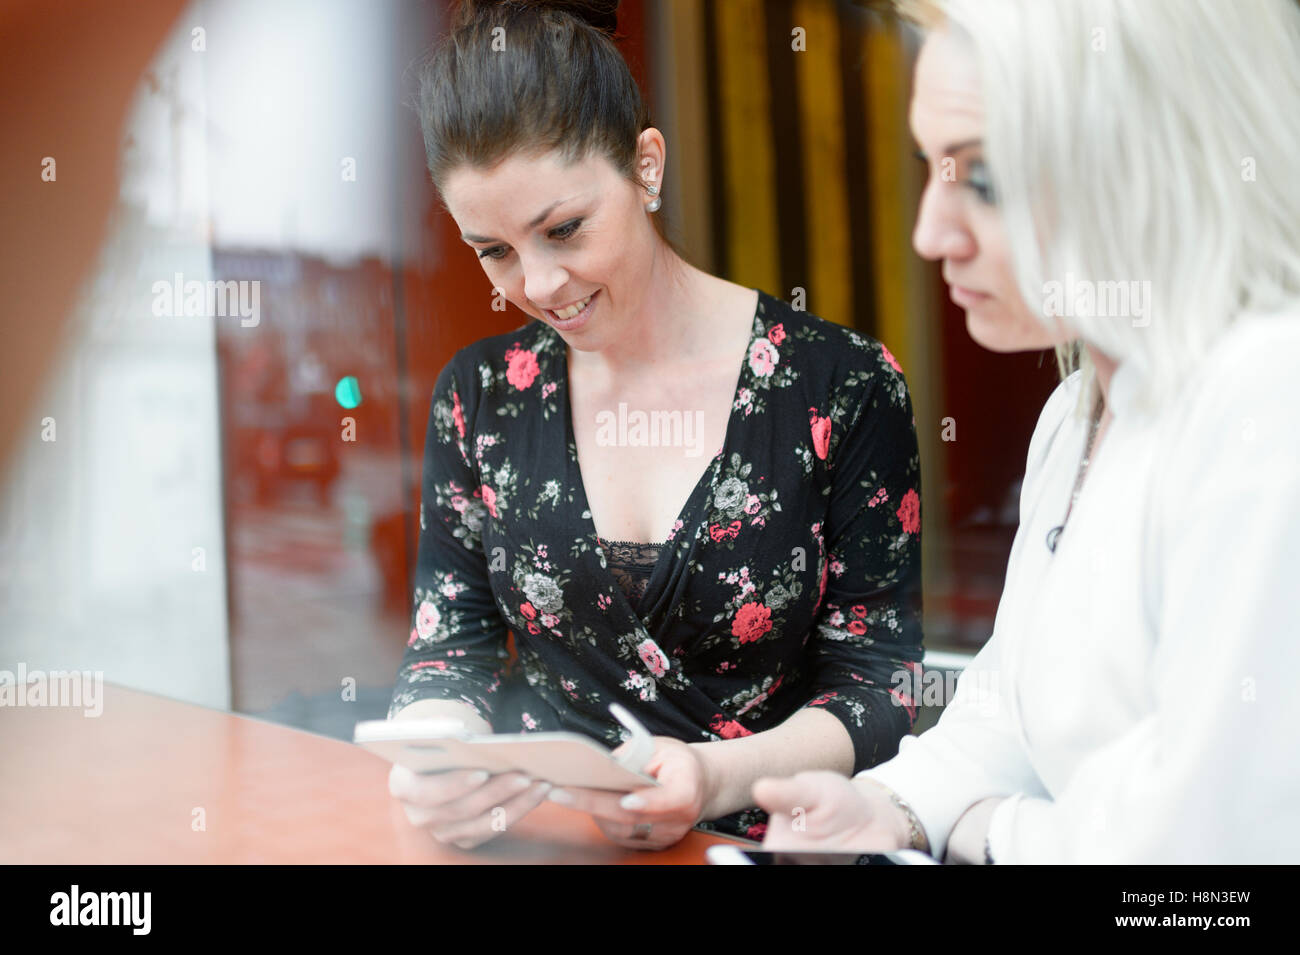 Young women using mobile phones at cafe - Stock Image